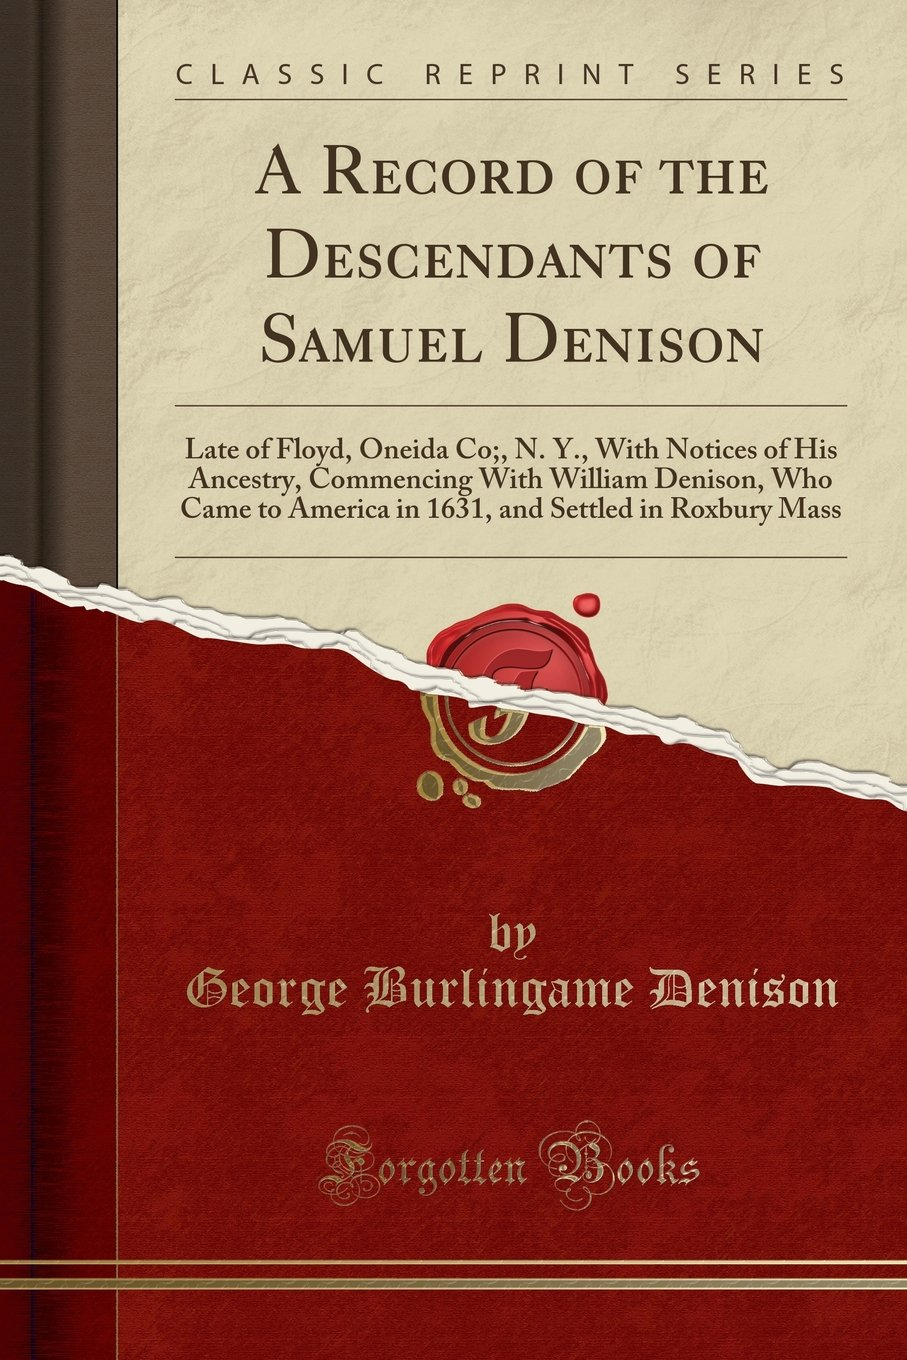 A Record of the Descendants of Samuel Denison: Late of Floyd, Oneida Co;, N. Y., with Notices of His Ancestry, Commencing with William Denison, Who ... and Settled in Roxbury Mass (Classic Reprint) pdf epub